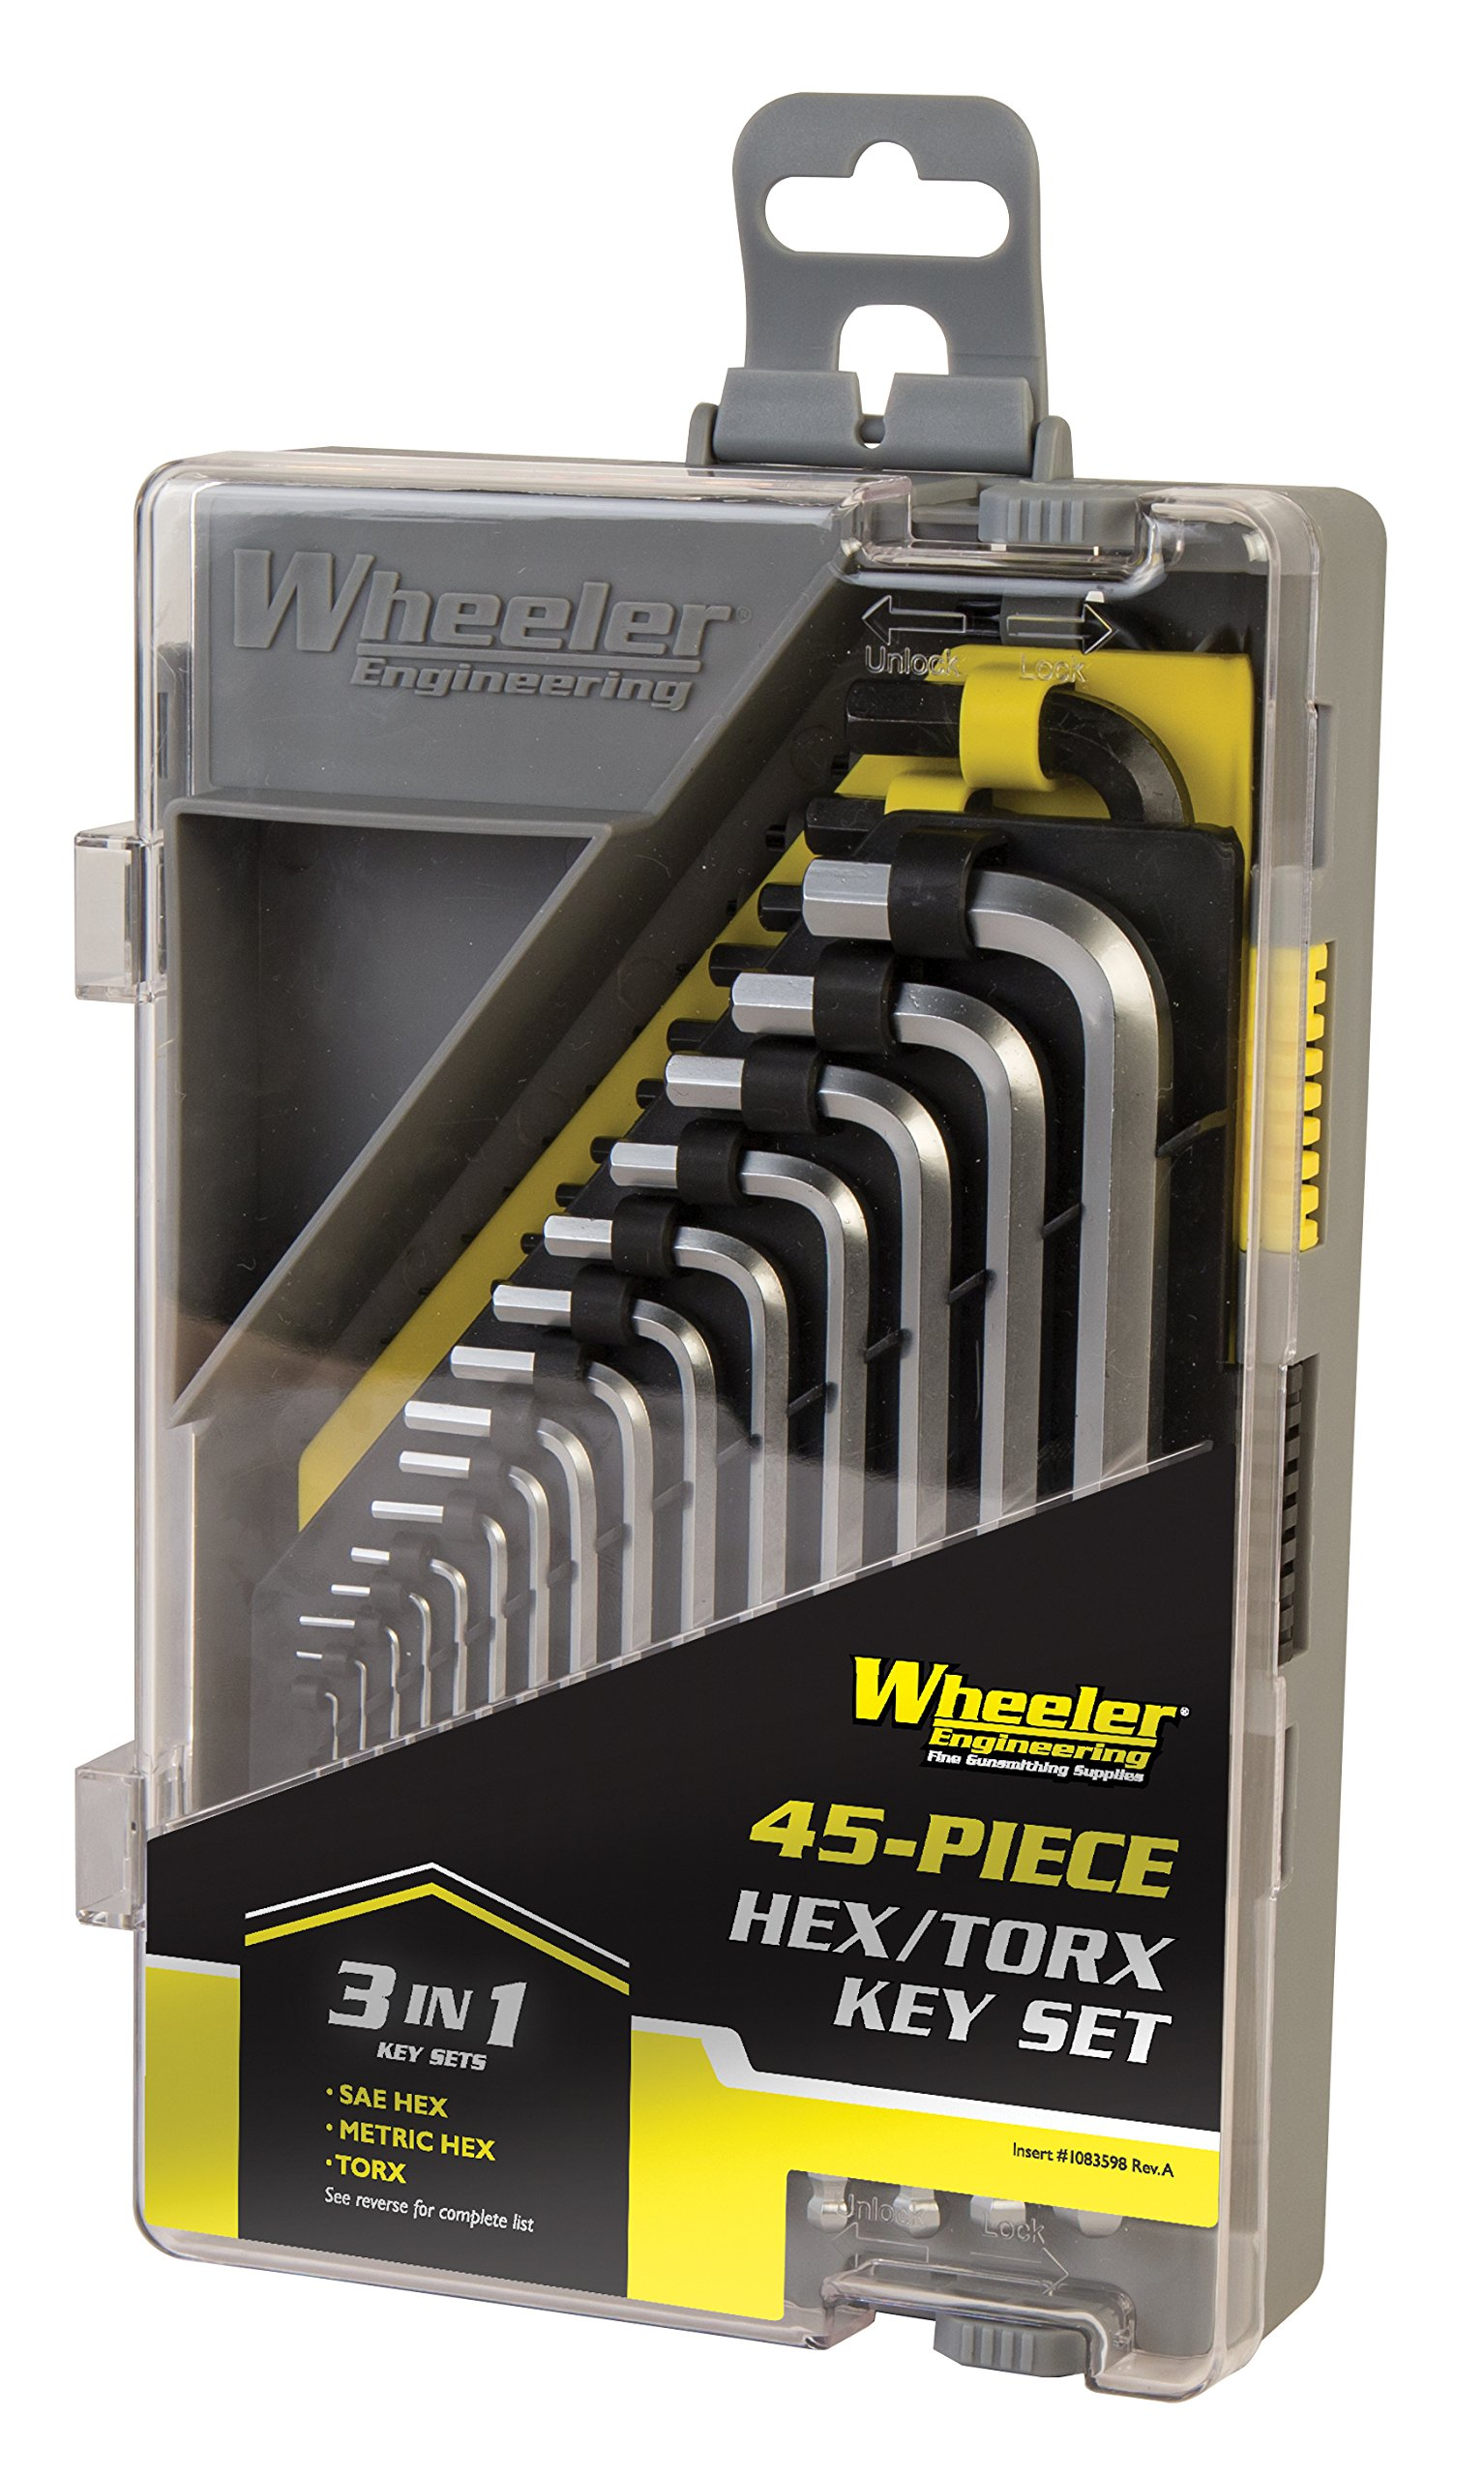 Wheeler 45 Piece SAE/Metric Hex and Torx Key Set for Pistol Rifle Handgun Gunsmithing Rebuild and Maintenance by Wheeler